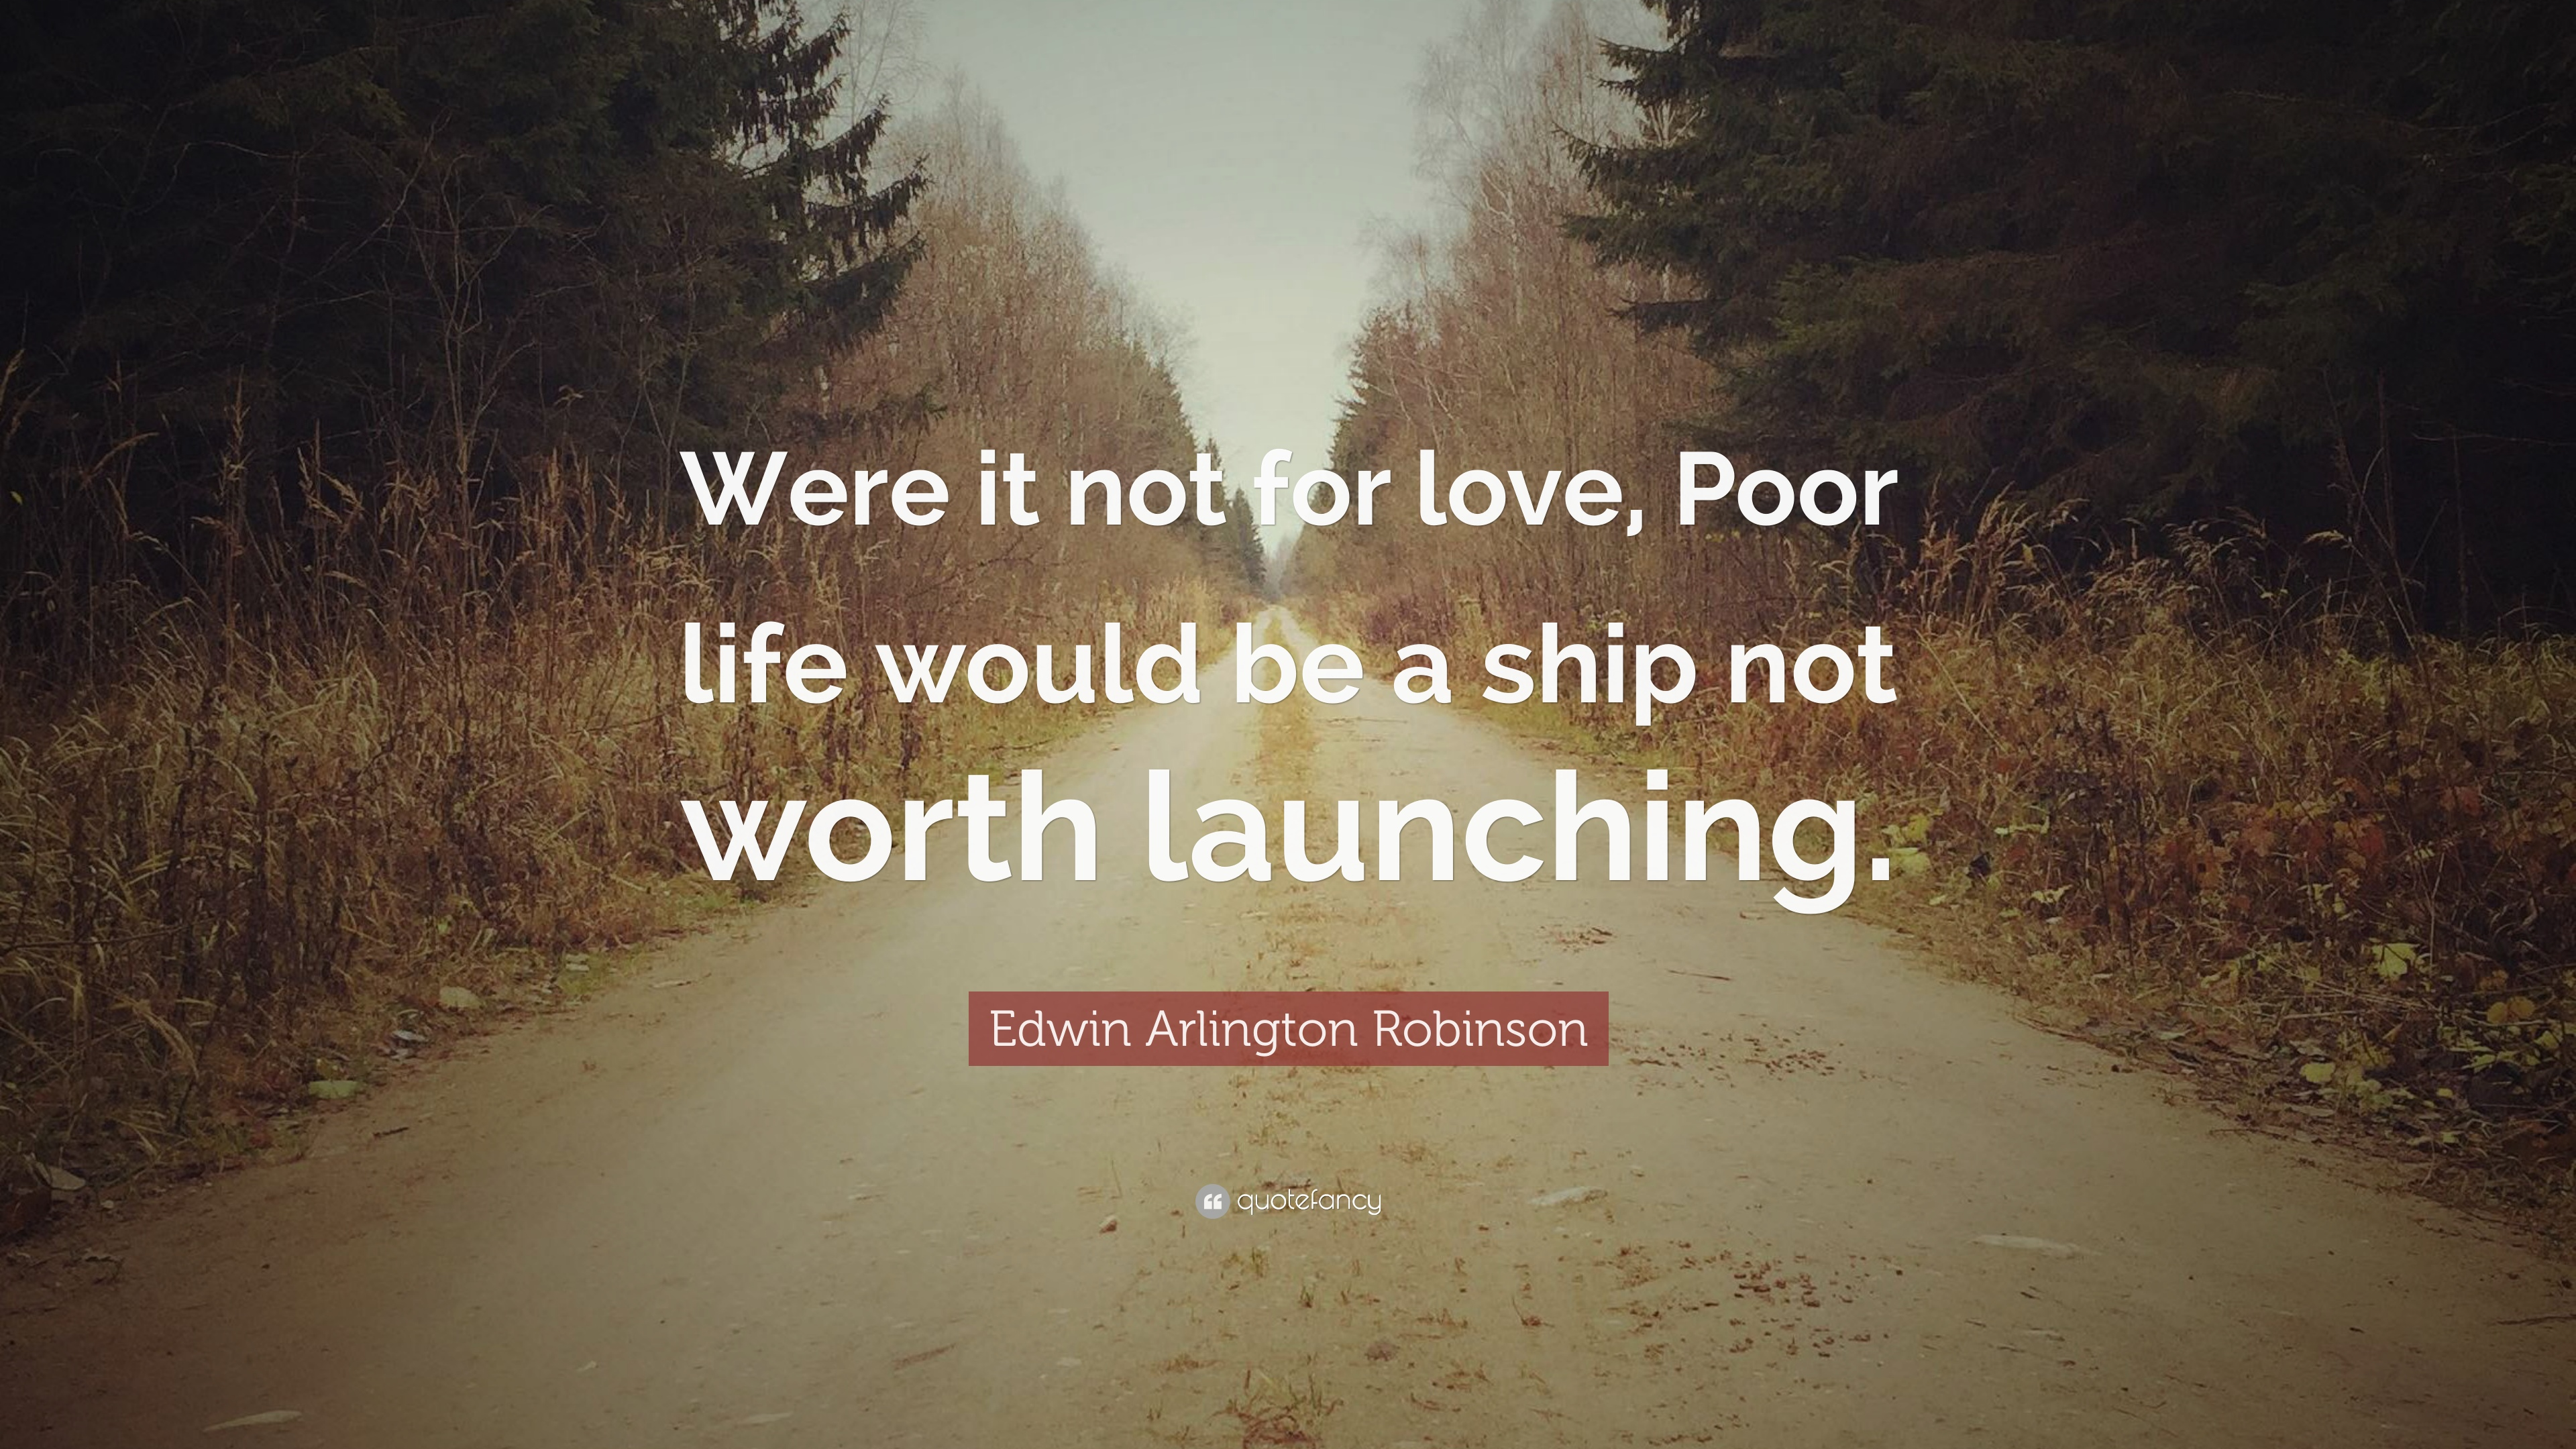 Edwin Arlington Robinson Quote: U201cWere It Not For Love, Poor Life Would Be